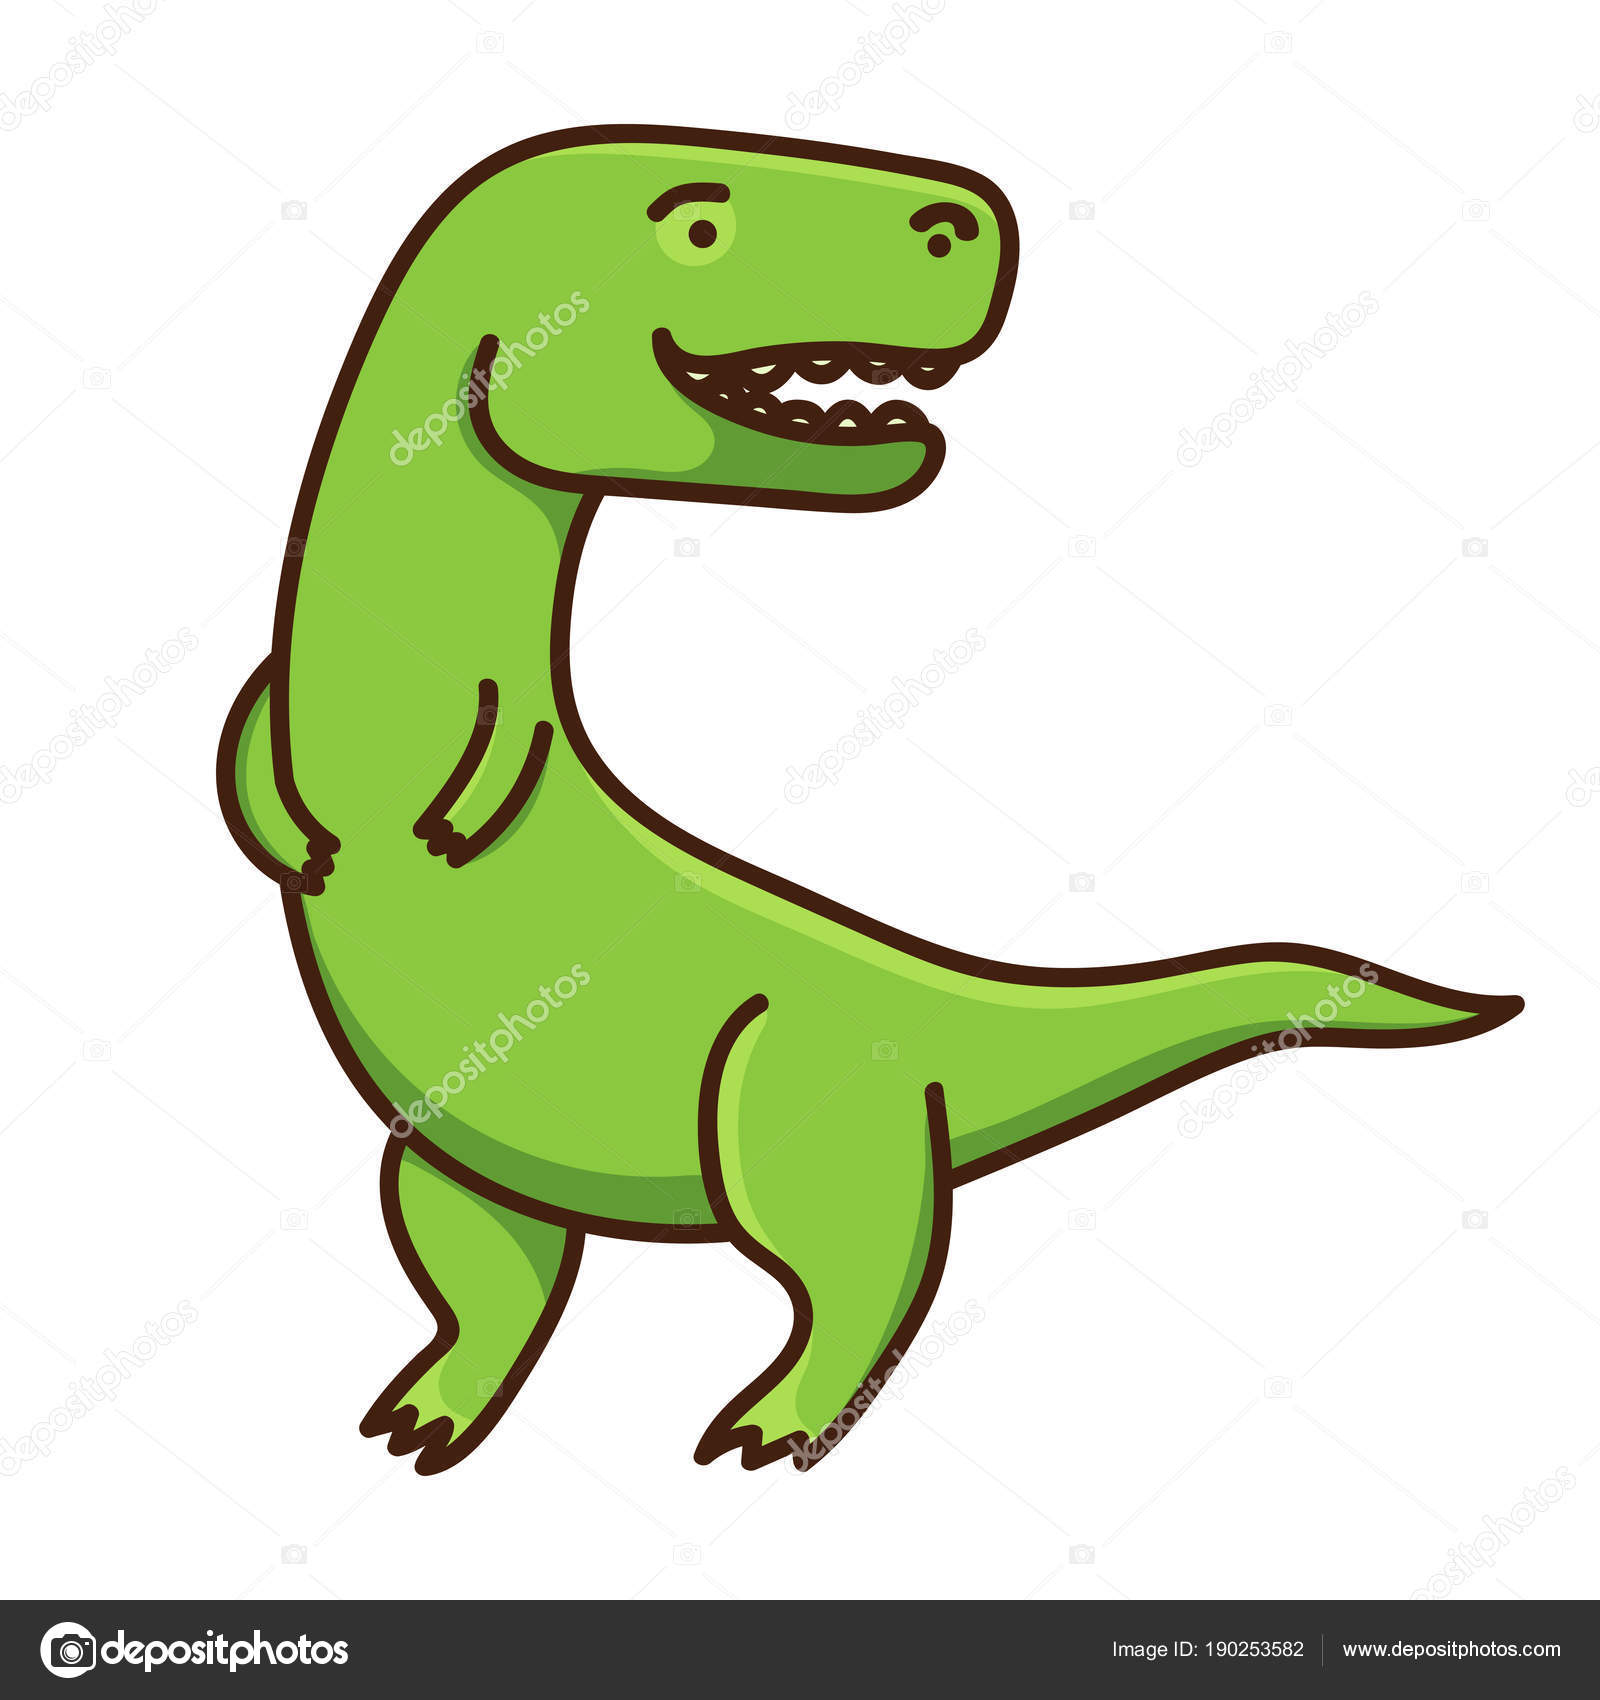 Image of: Rawr Cute Cartoon Dinosaur Isolated On White Background Vector Illustration Stock Illustration Depositphotos Cute Cartoon Dinosaur Isolated White Background Vector Illustration